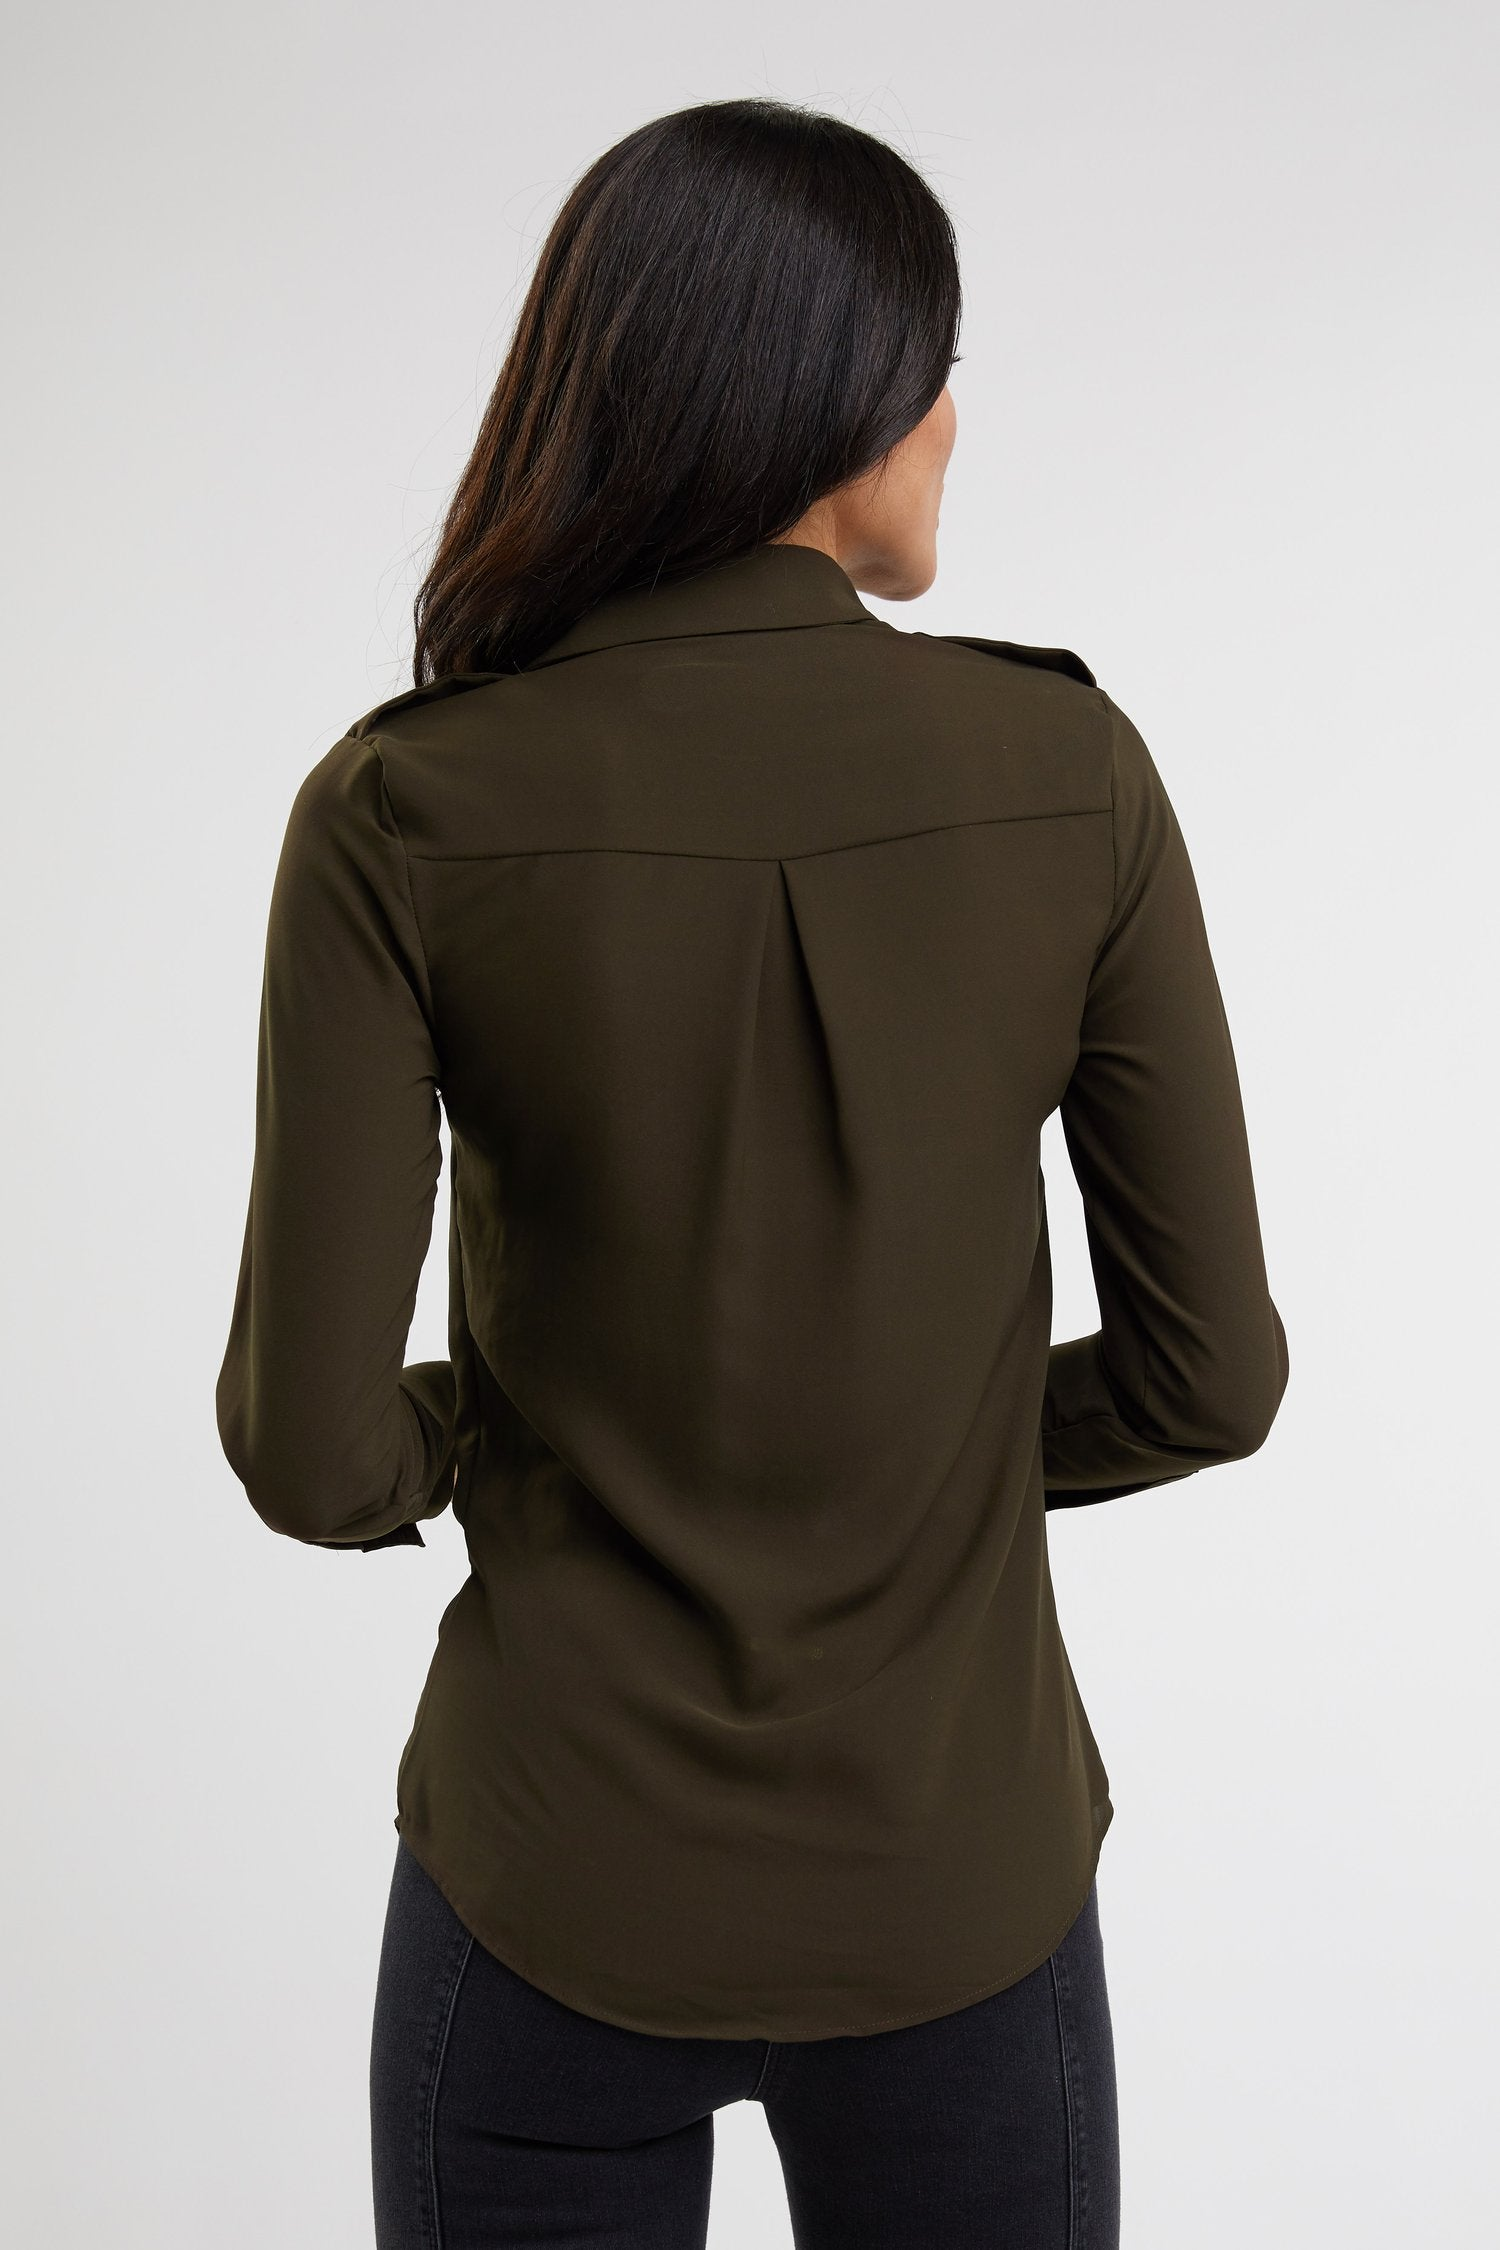 Holland Cooper Luxury Shirt for Ladies in Khaki